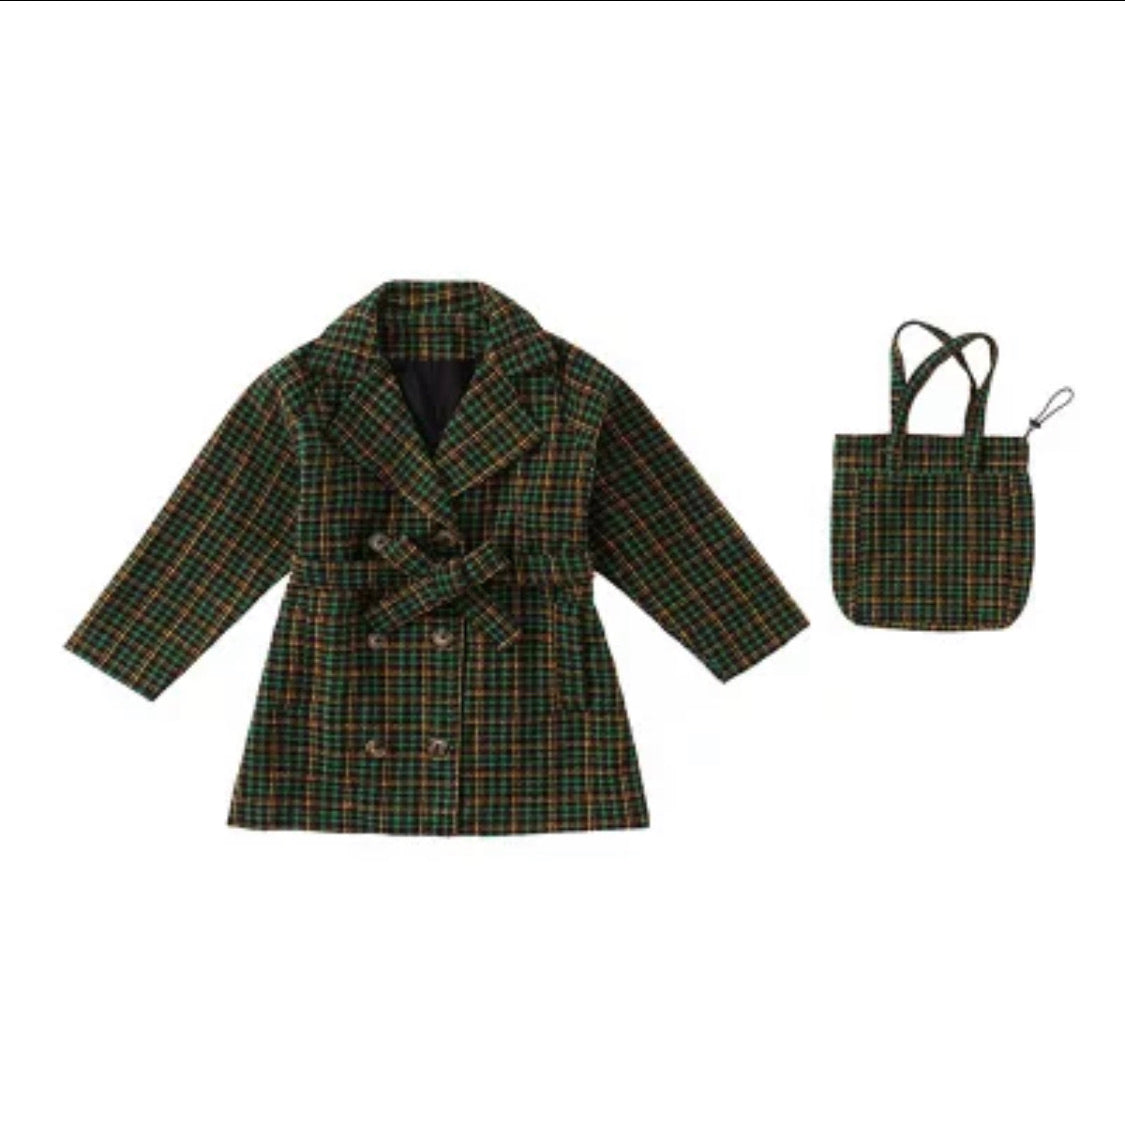 Plaid things blazer and bag